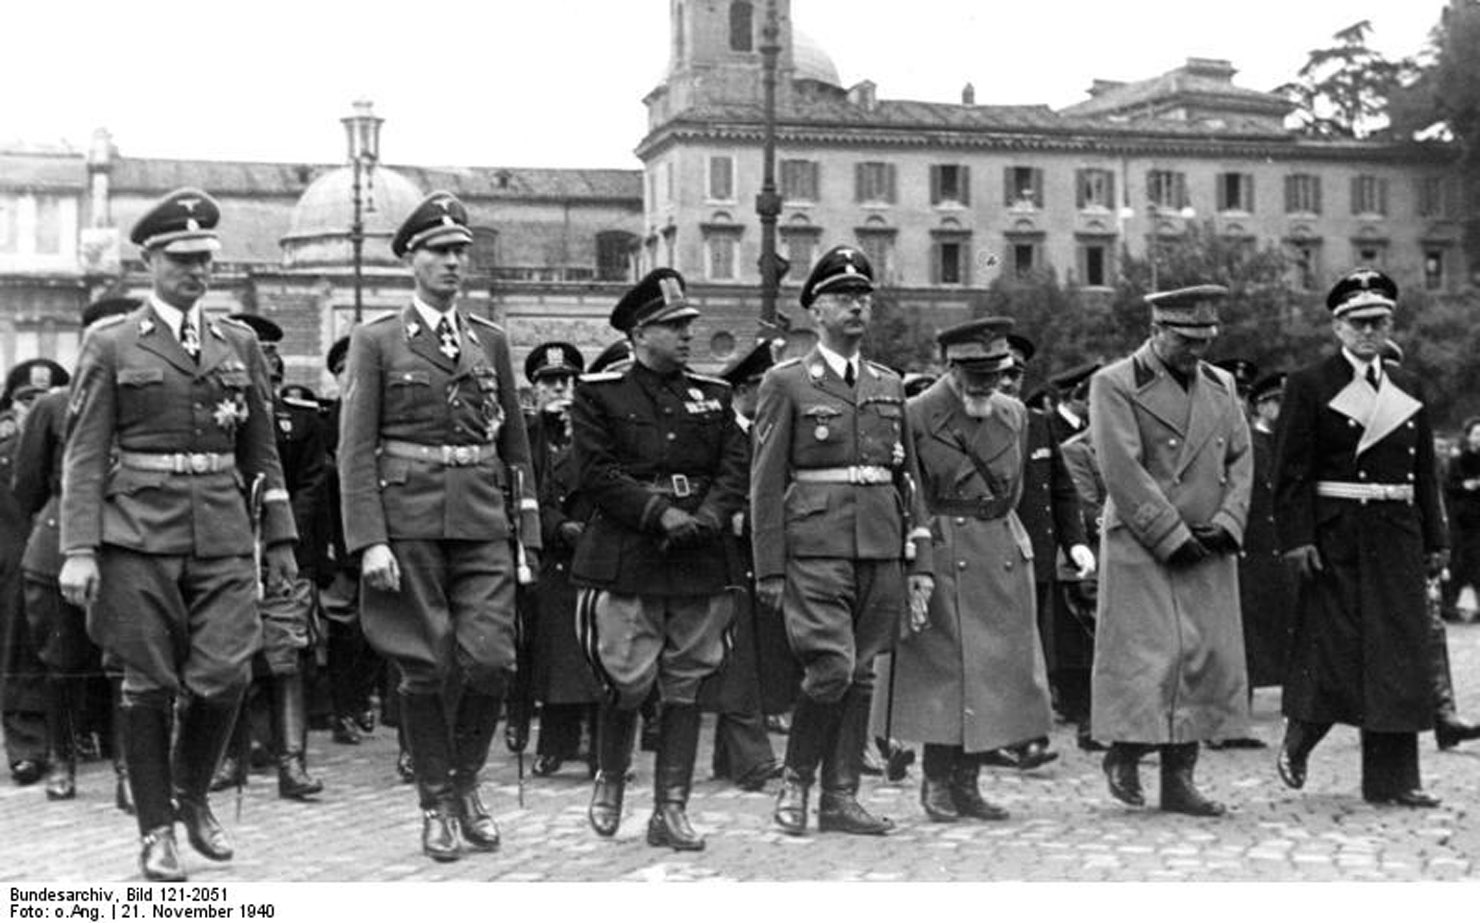 an analysis of the world war two and the extermination of the jewish people The two faces italy displayed toward jewish citizens and refugees just before and during world war ii have become the focus of recent historical research that both undermines that country's.